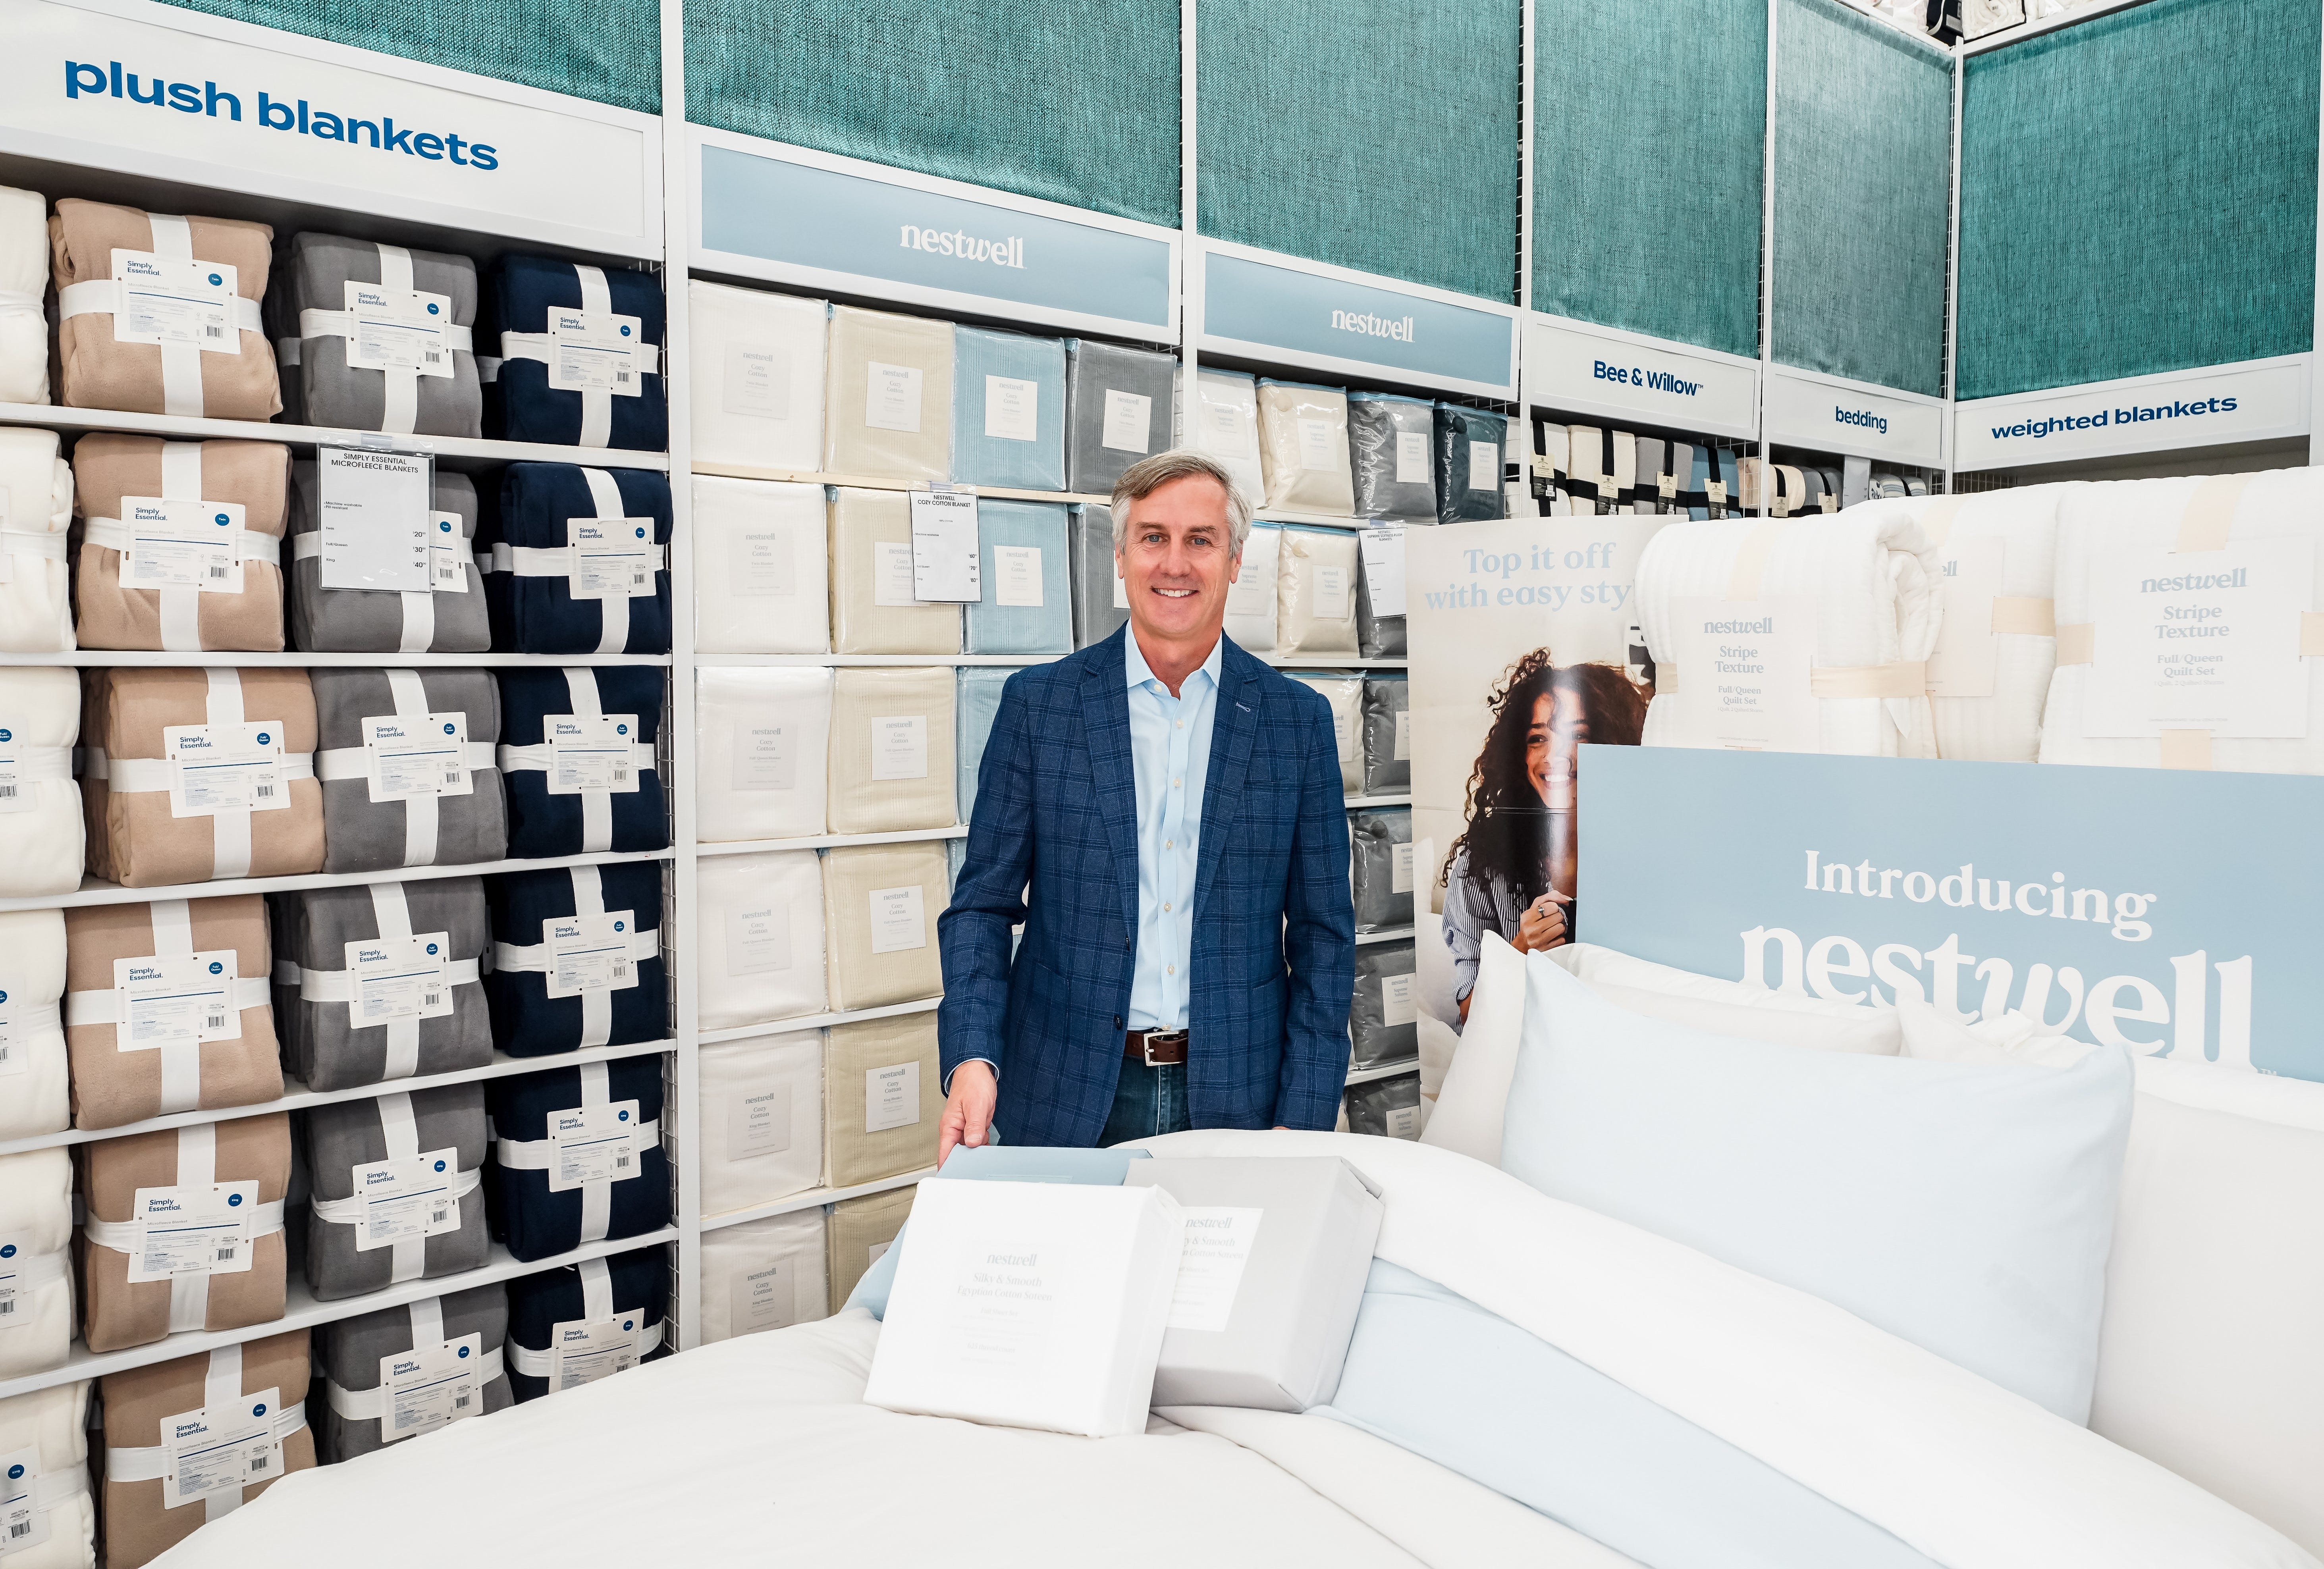 Bed Bath & Beyond debuts Nestwell brand. And yes, you can use the 20% off coupon on the sheets and towels